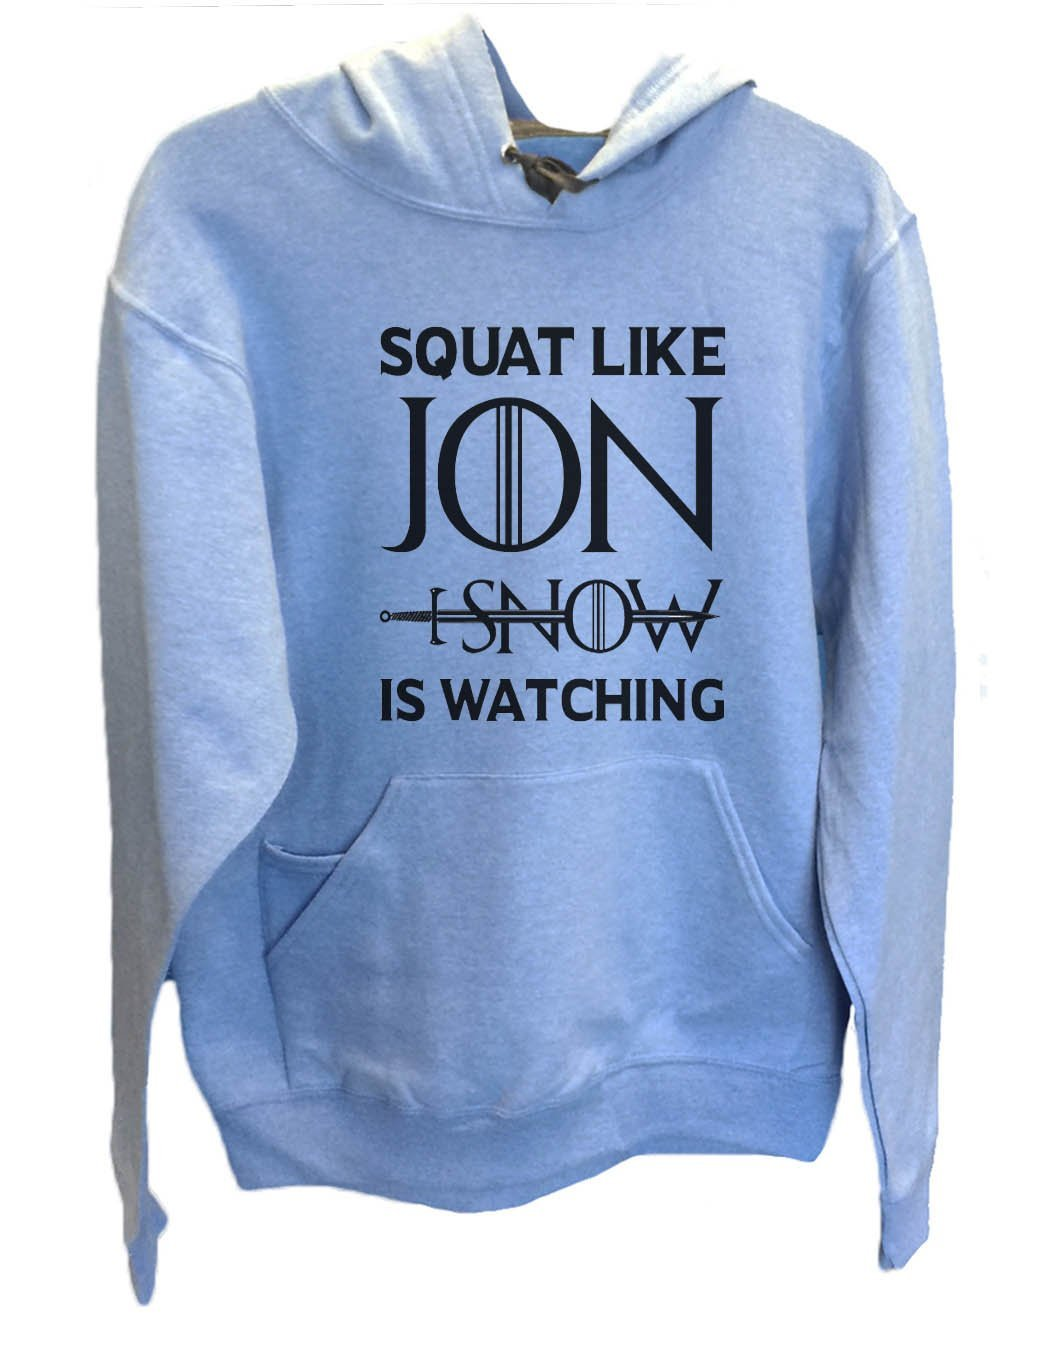 UNISEX HOODIE - Squat Like Jon I Snow Is Watching - FUNNY MENS AND WOMENS HOODED SWEATSHIRTS - BB19 Funny Shirt Small / North Carolina Blue